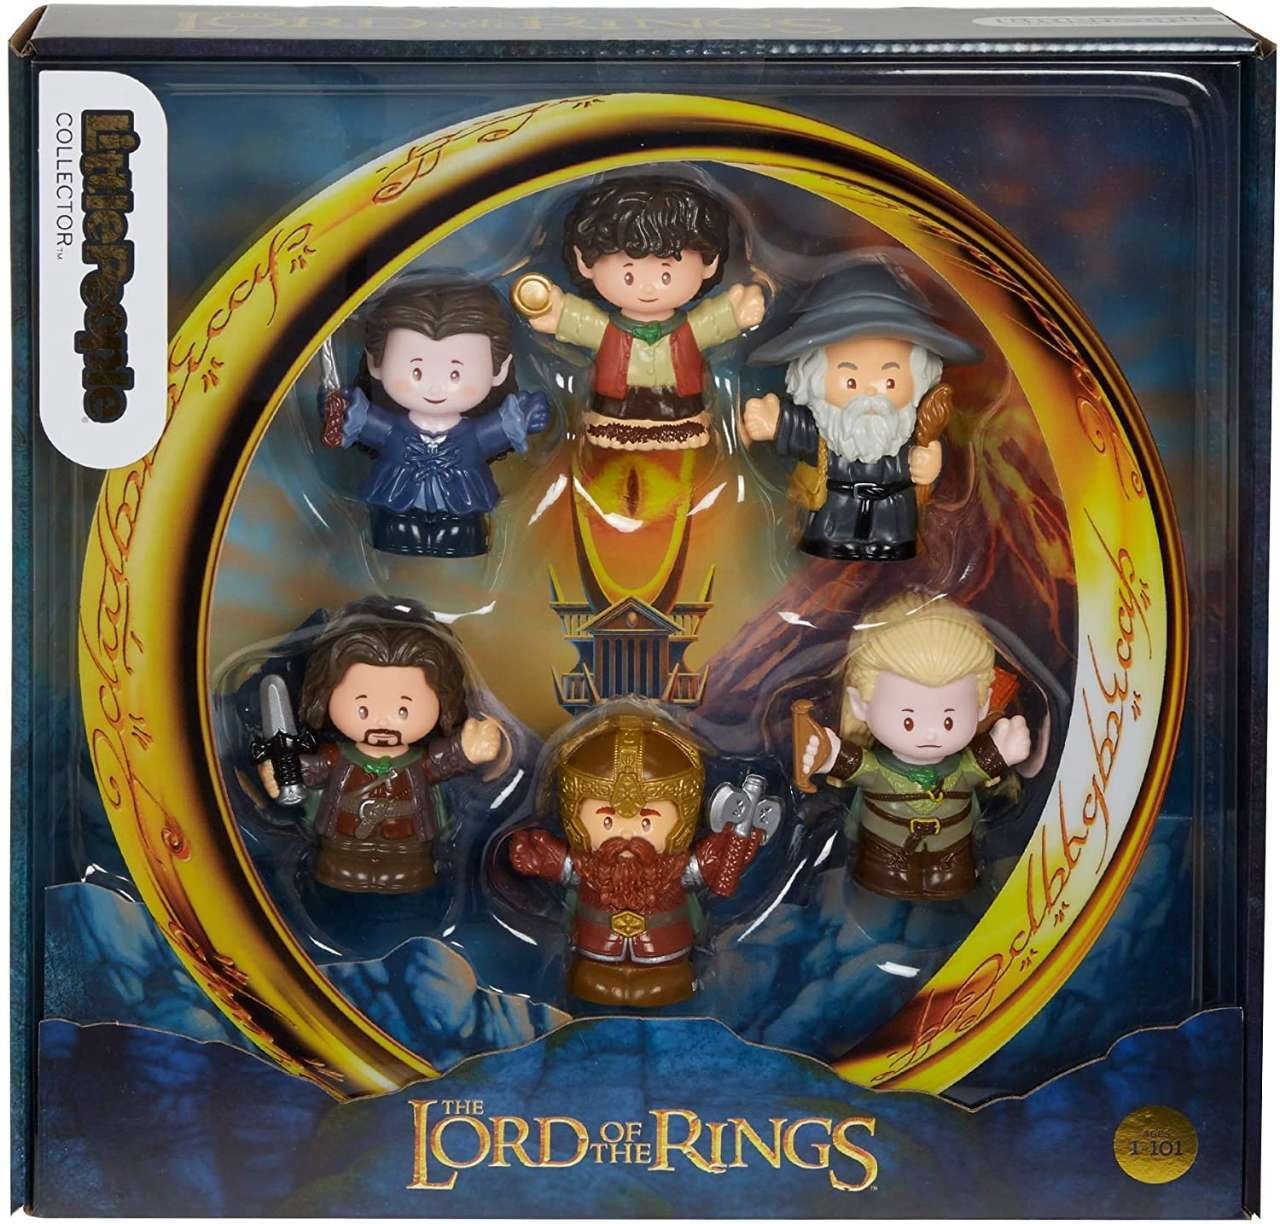 Lord of the Rings Little People Figure Set Launches for Hobbit Day